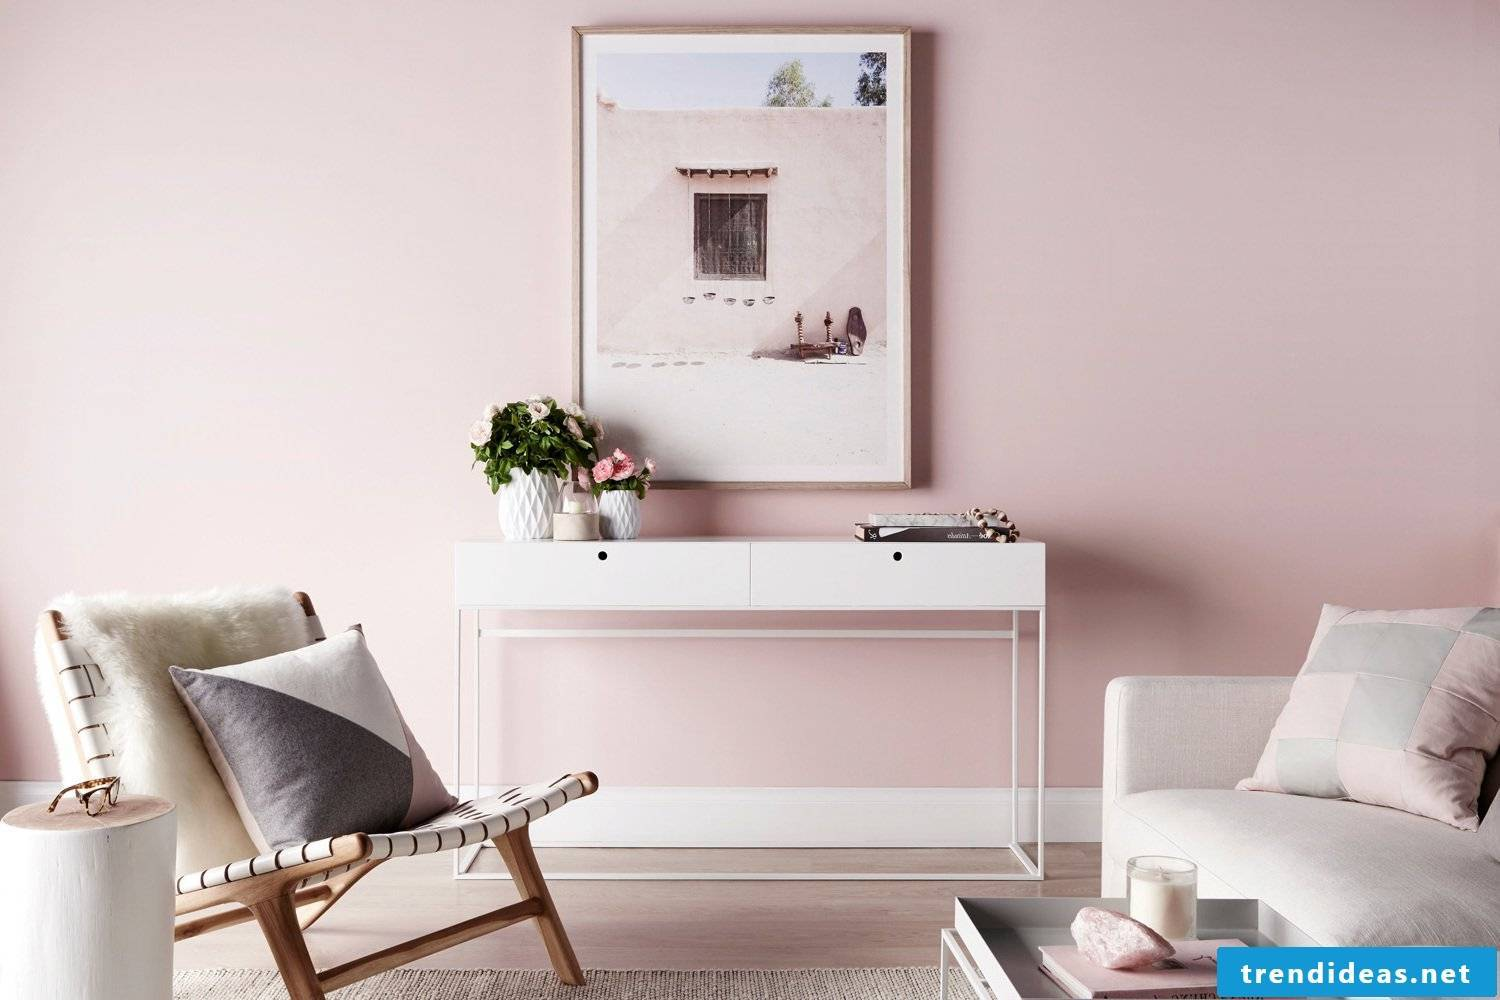 pink color furnishing pink color meaning